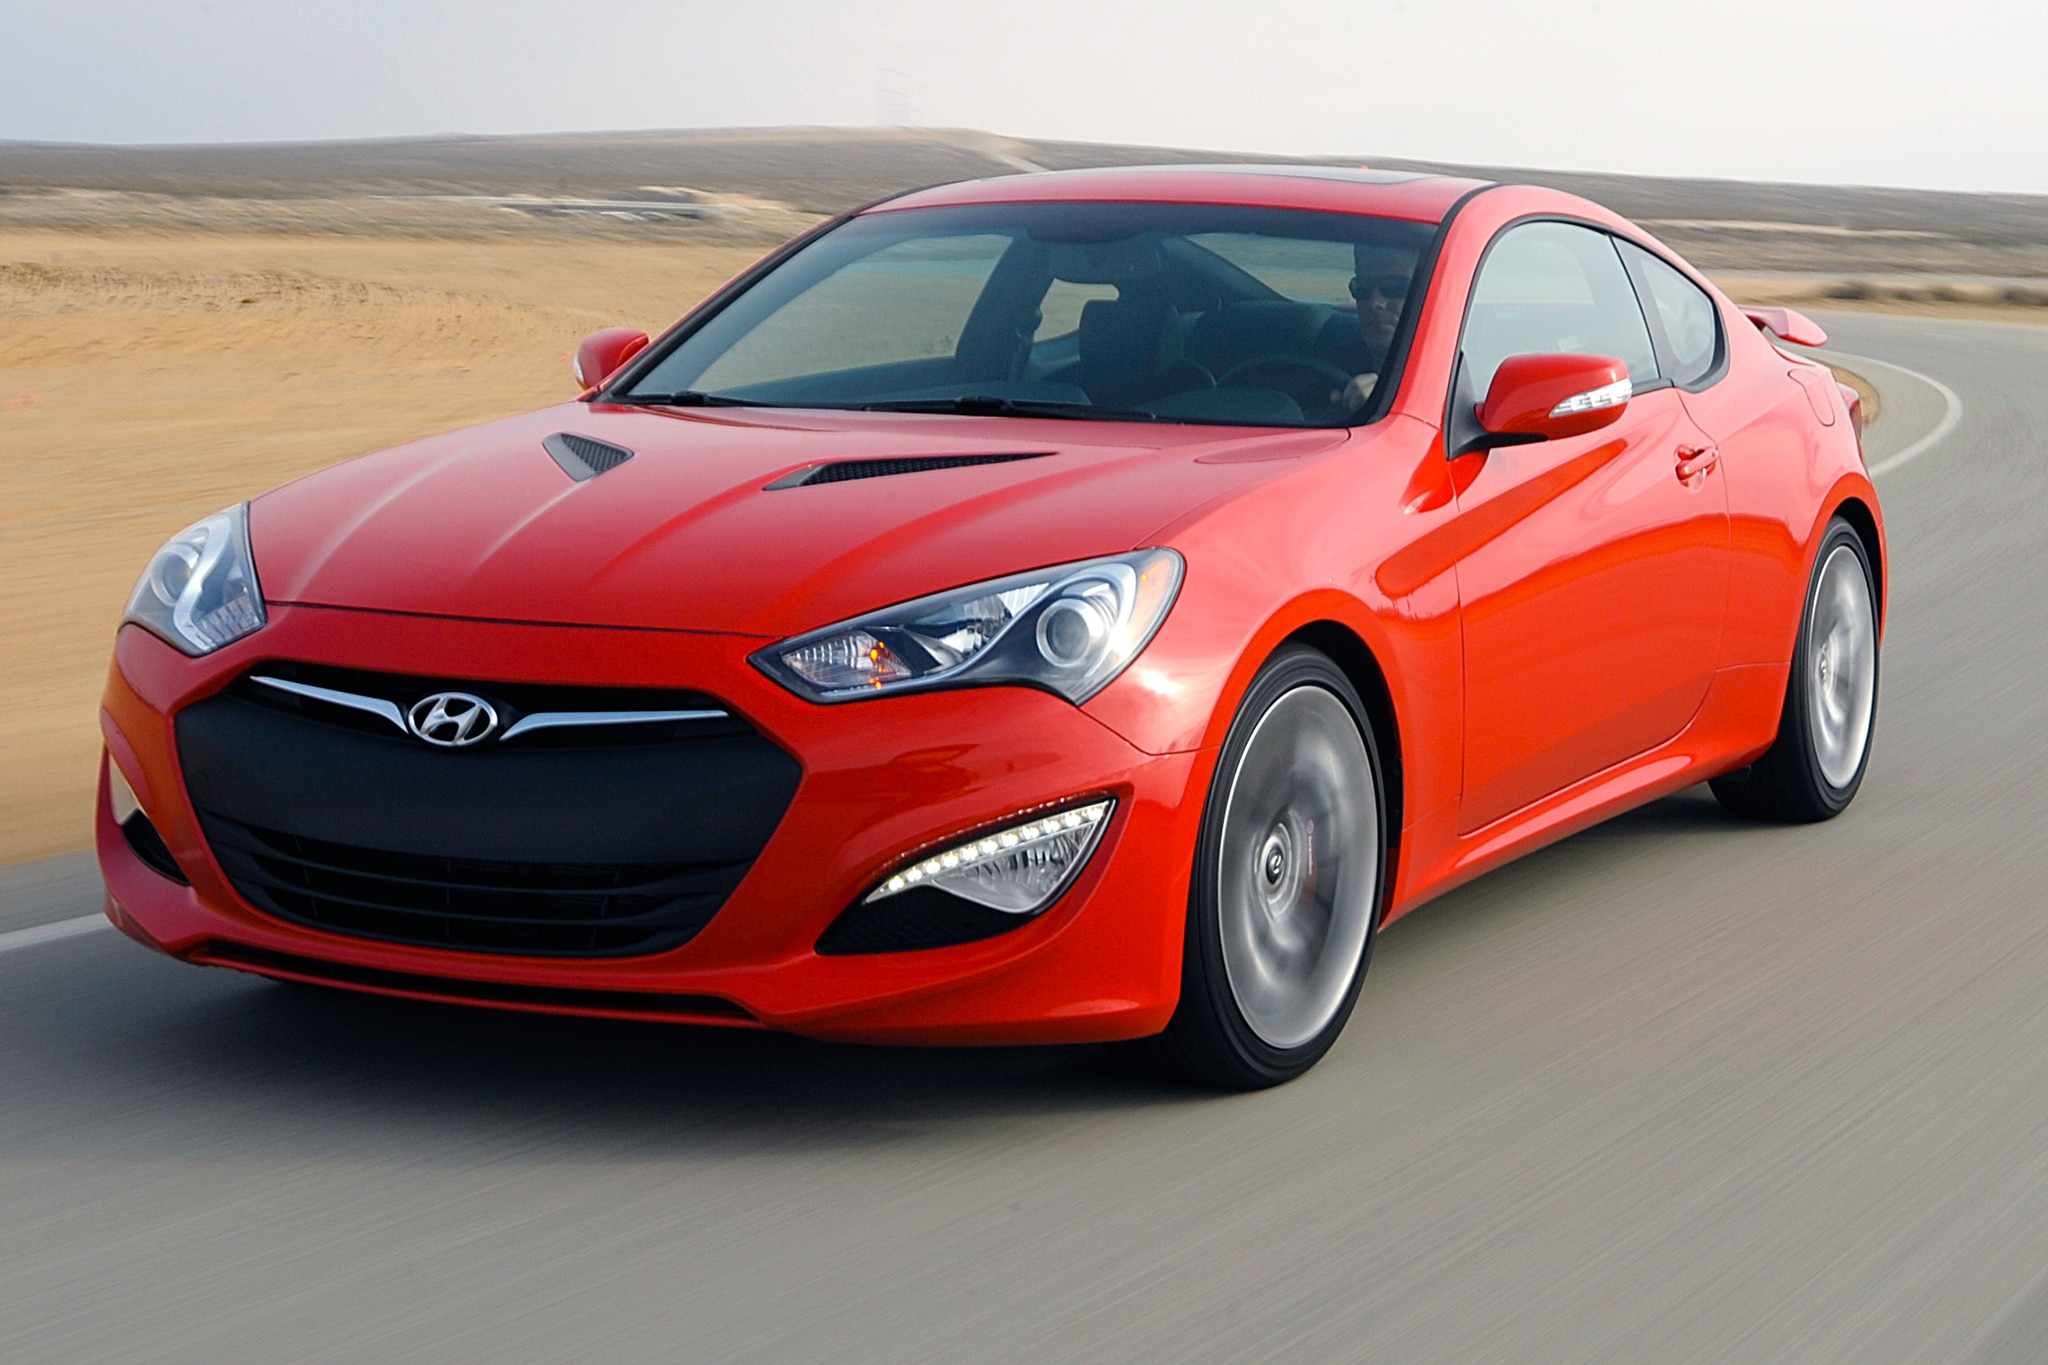 2014 Hyundai Genesis Coupe Priced At 27245 Automobile